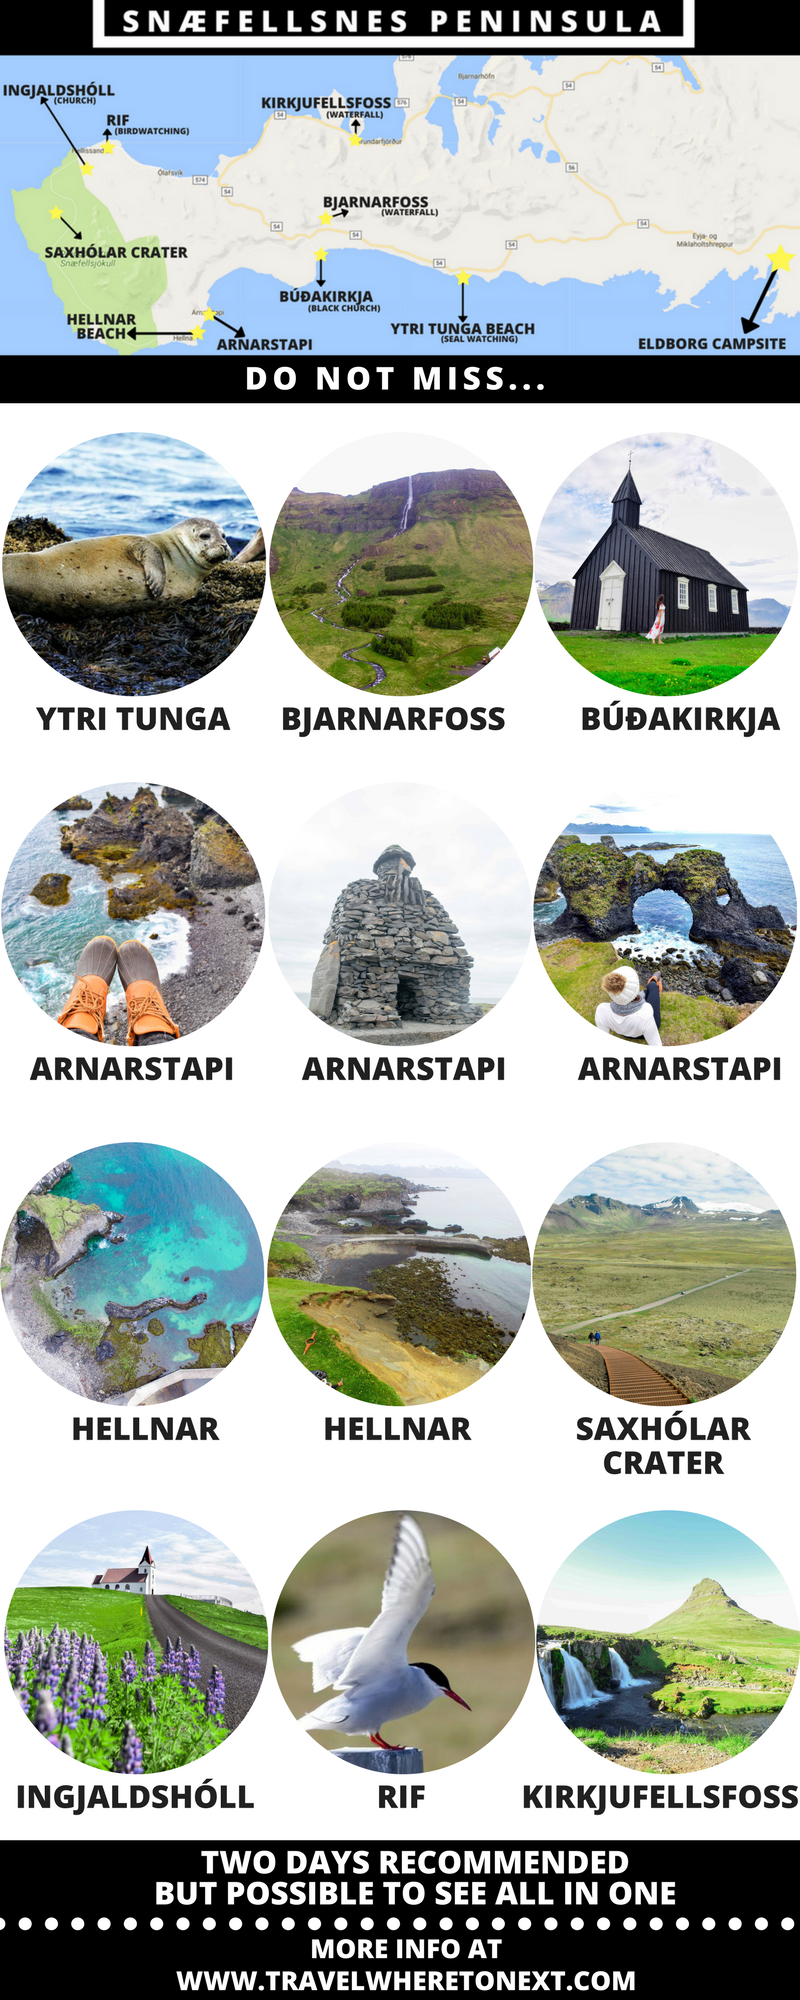 Snæfellsnes Peninsula is one of the best routes to drive in Iceland and for good reason. The peninsula is full of some of the best things to see in Iceland all located conveniently near each other.